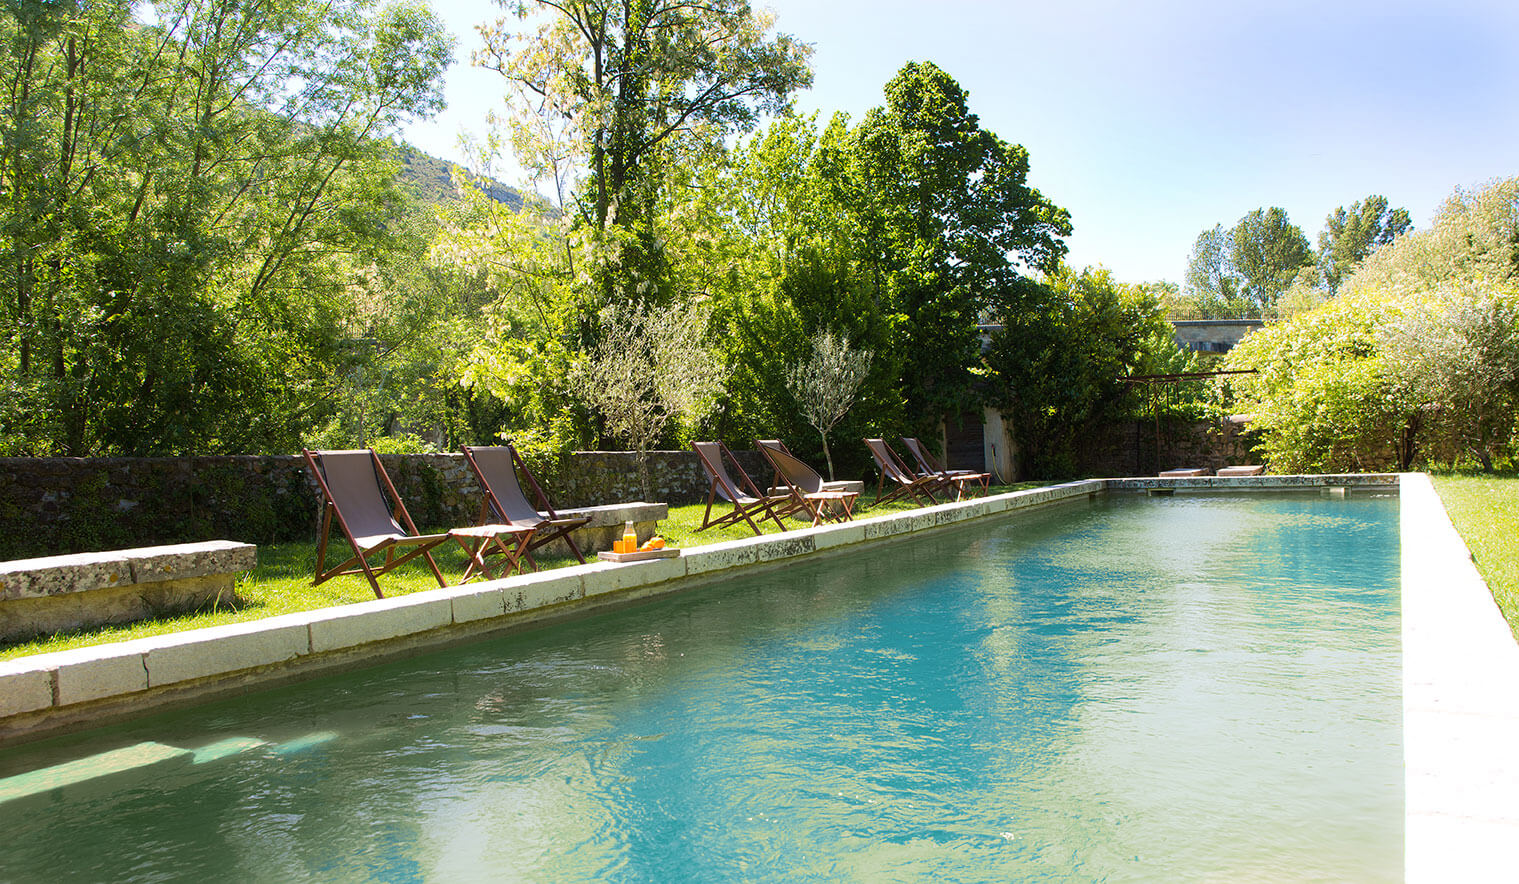 Chateau Uzer, A Bu0026B And Flat Rental In Ardeche, France. Also Has Cabans